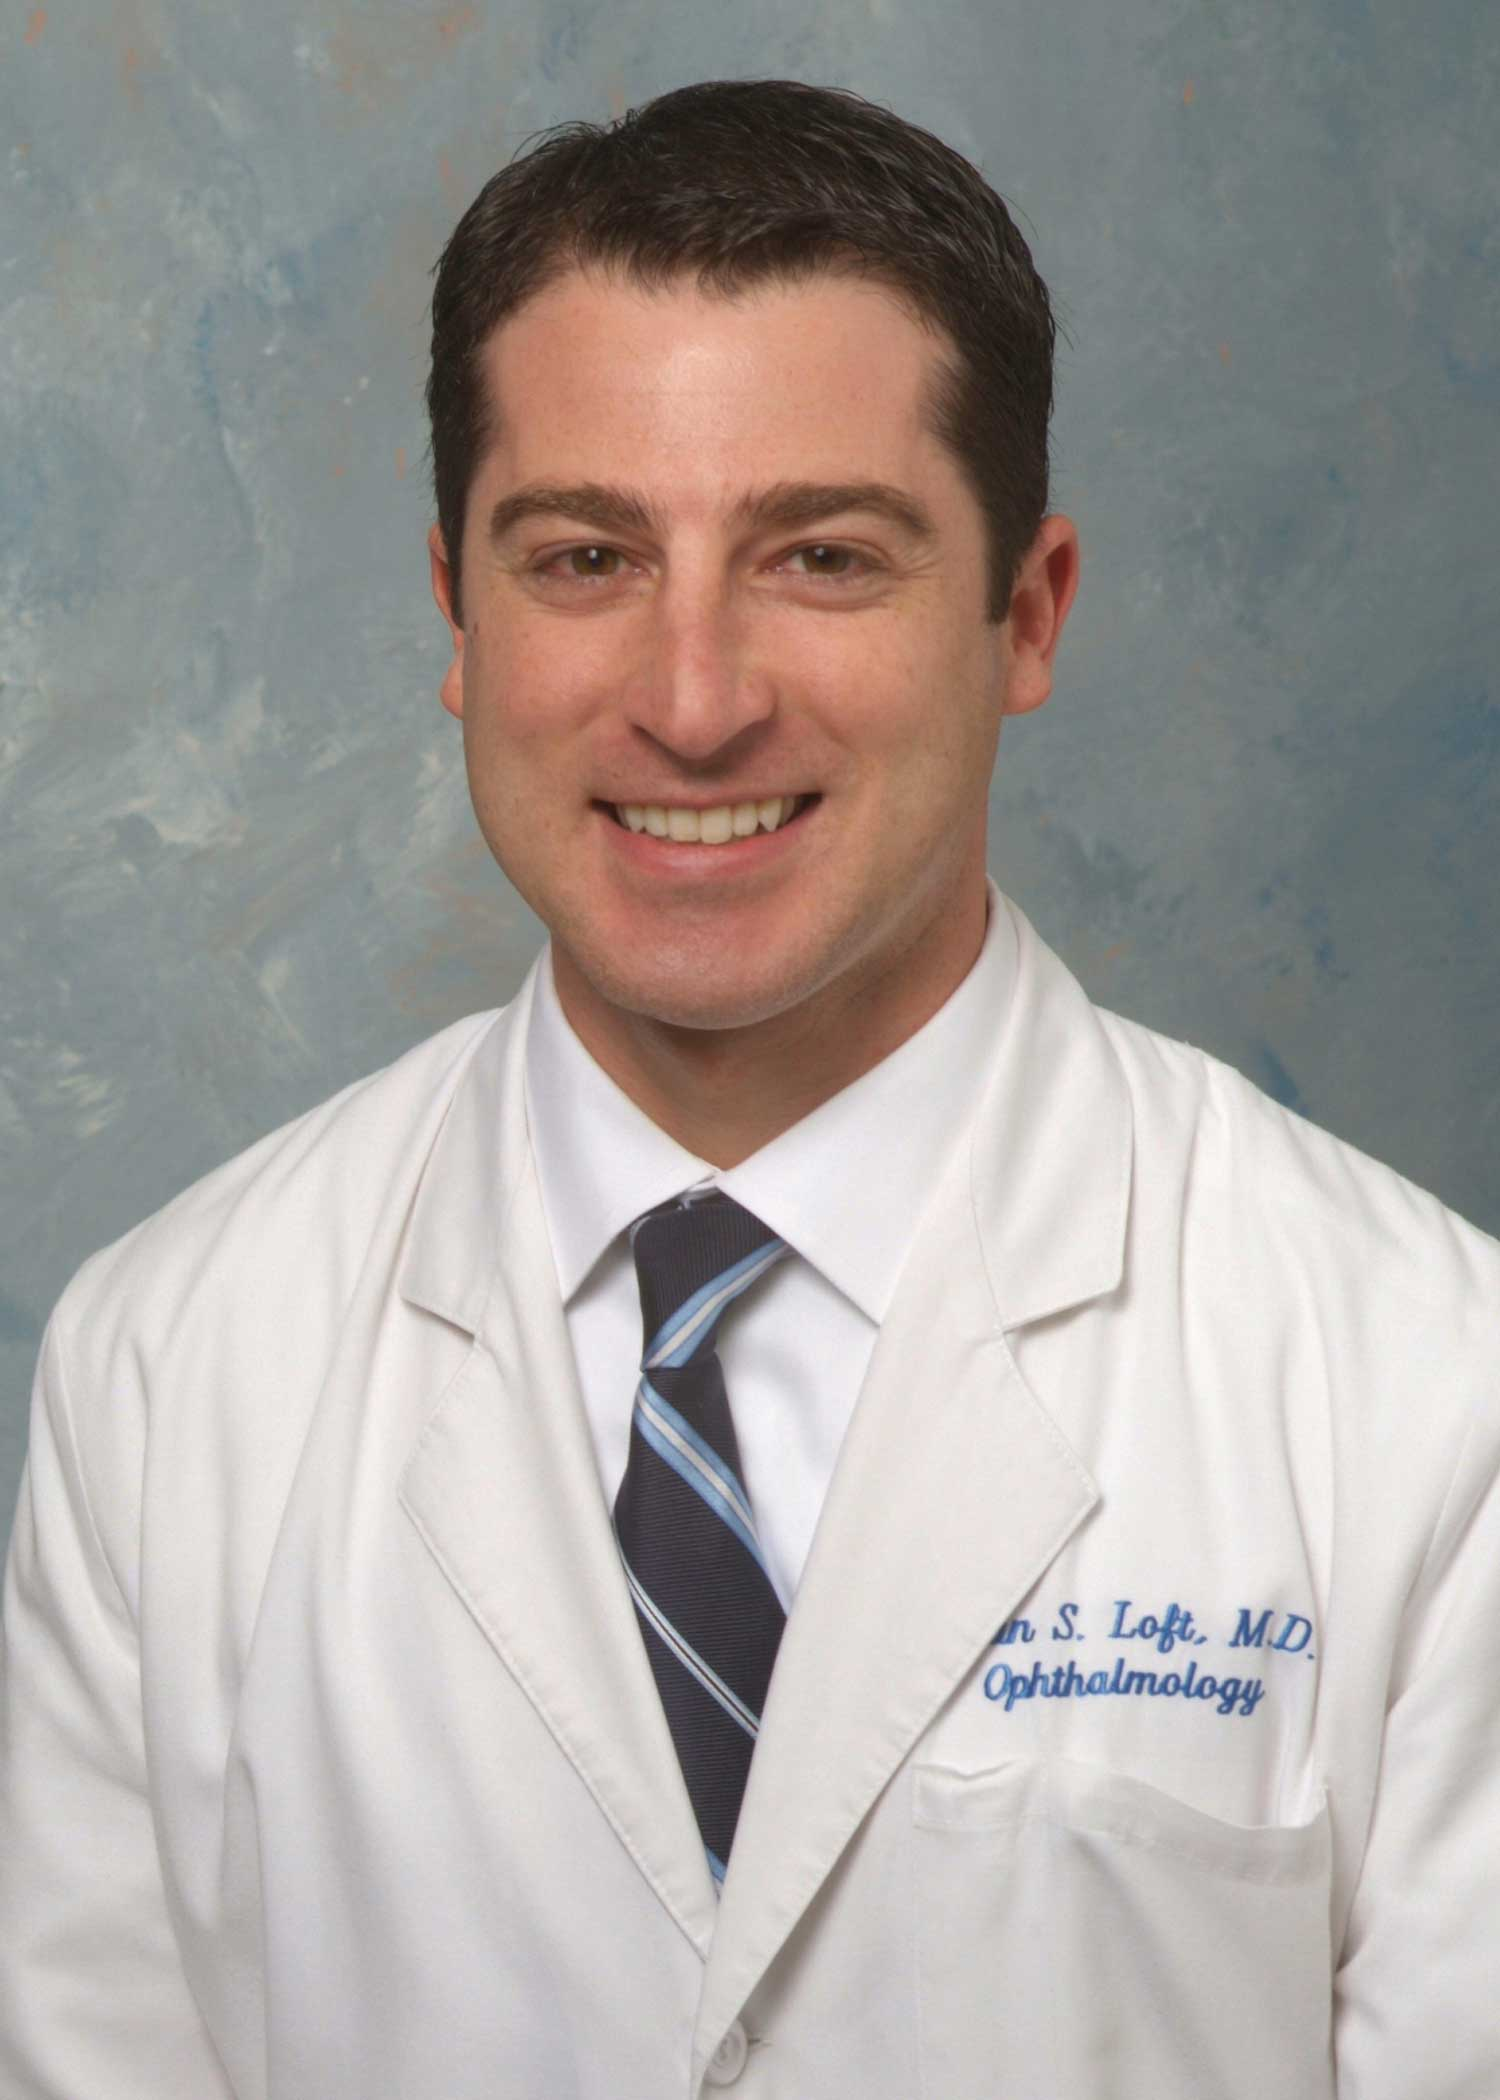 Dr. Evan Loft, MD